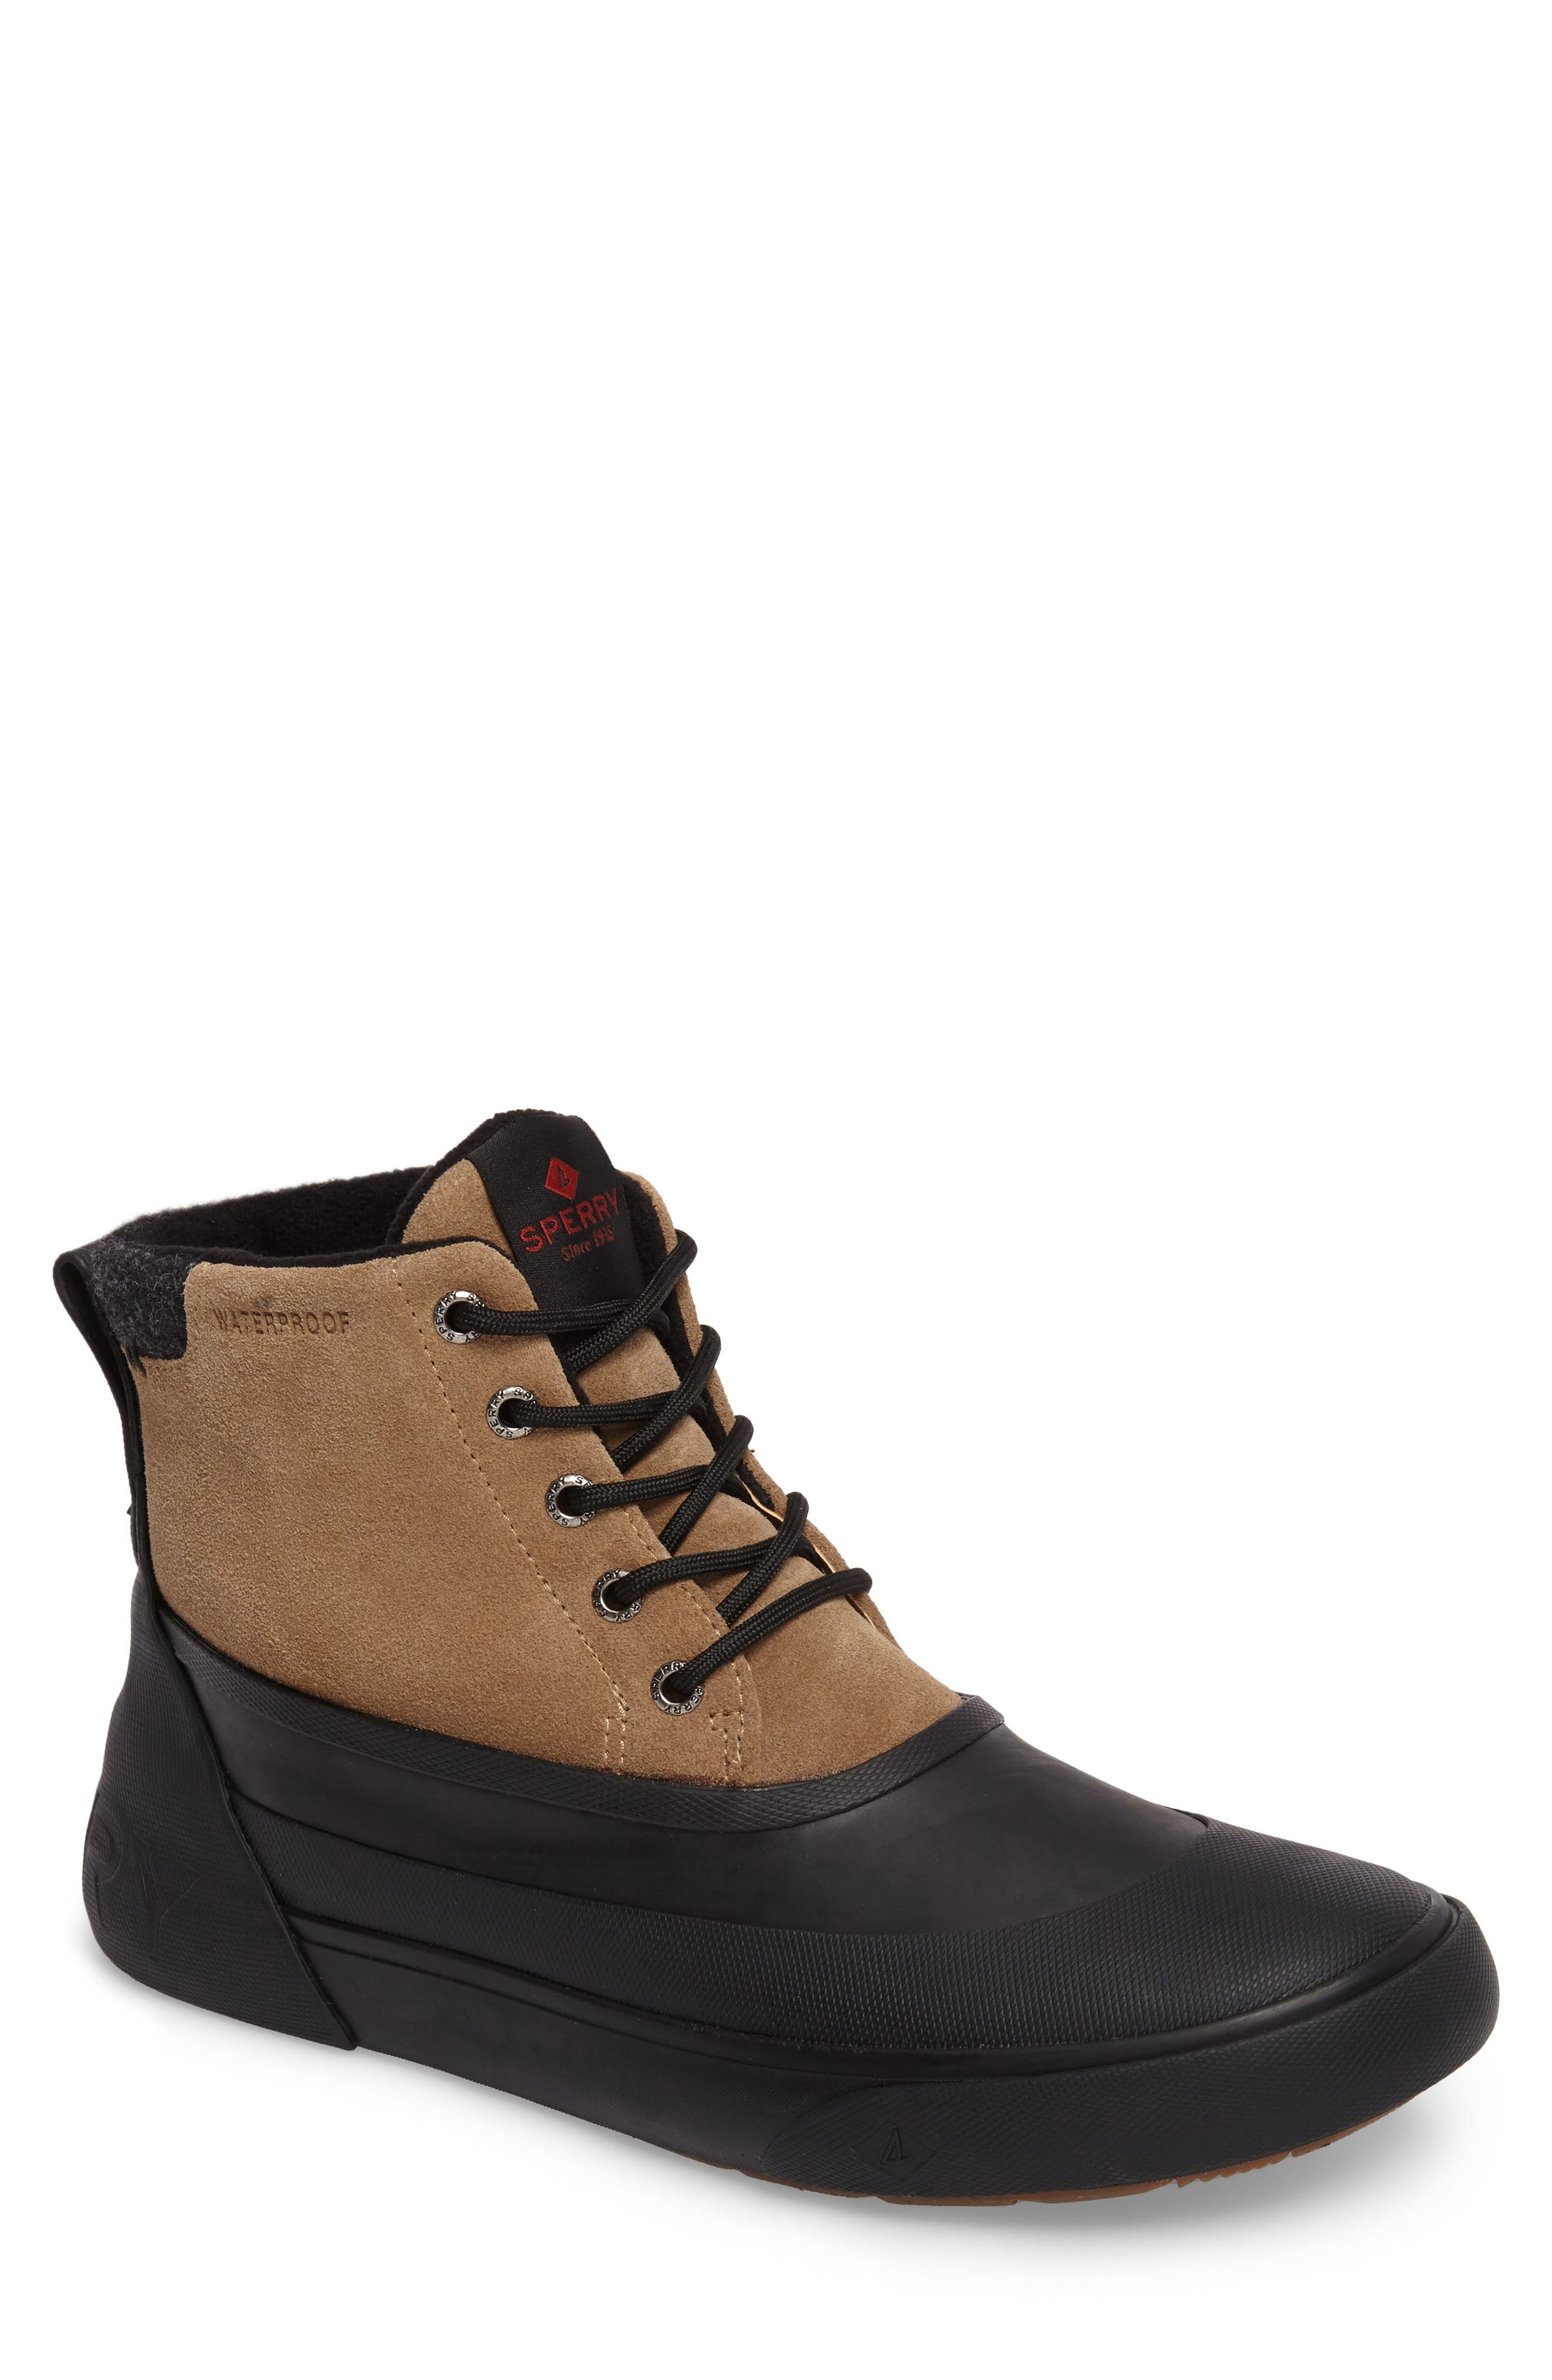 Cutwater Boot,                         Main,                         color, Noce/ Black